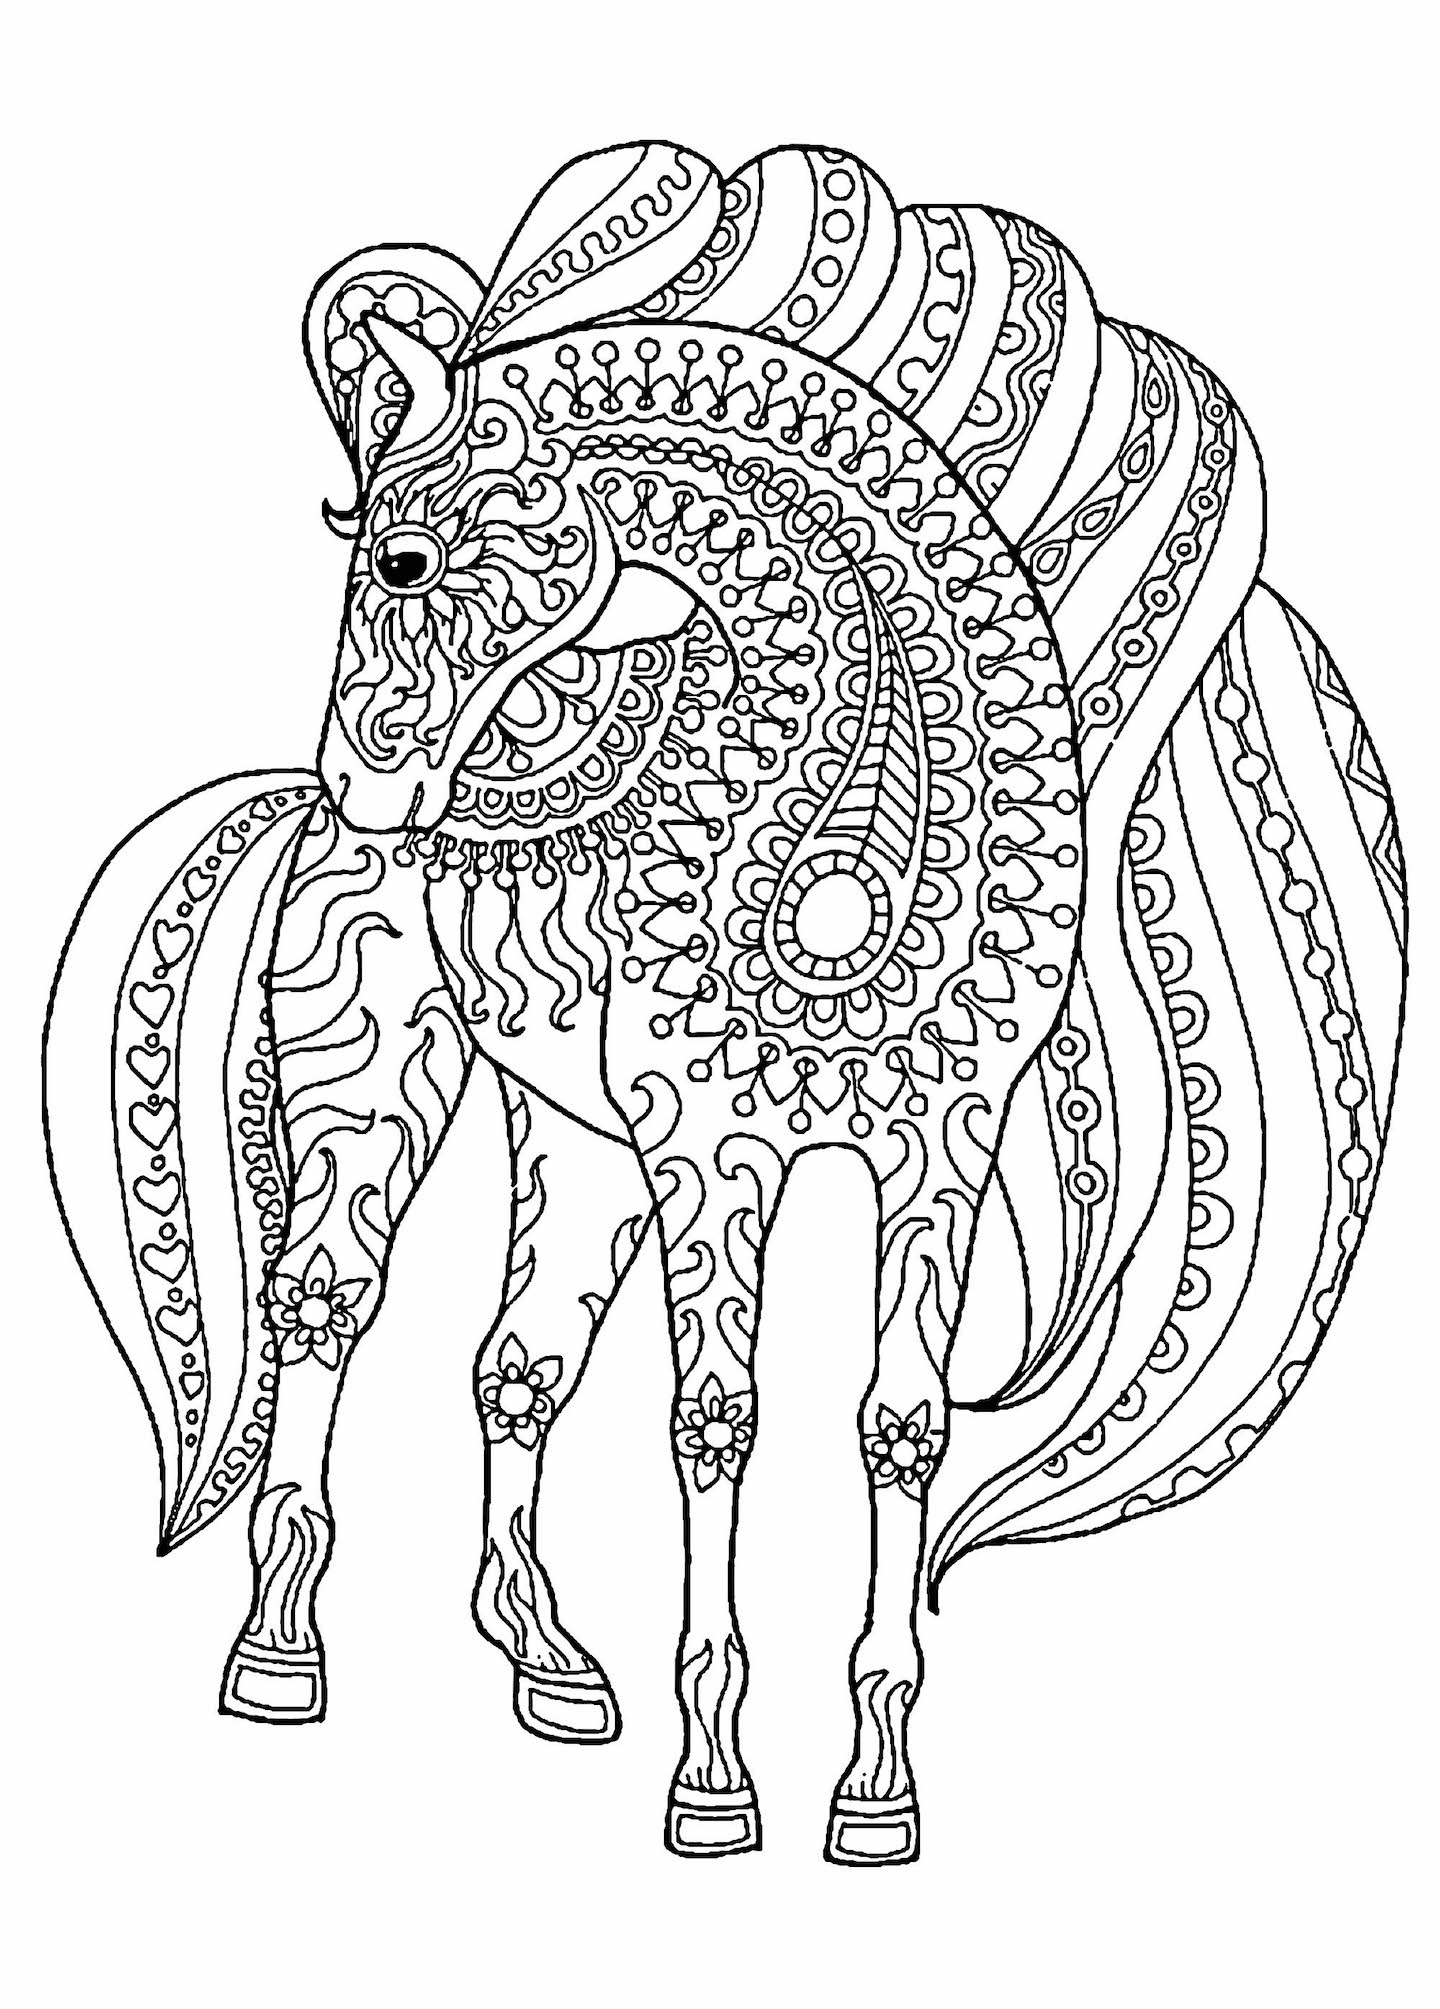 color pages of horses hand drawn horse for adult coloring page art therapy stock color pages horses of